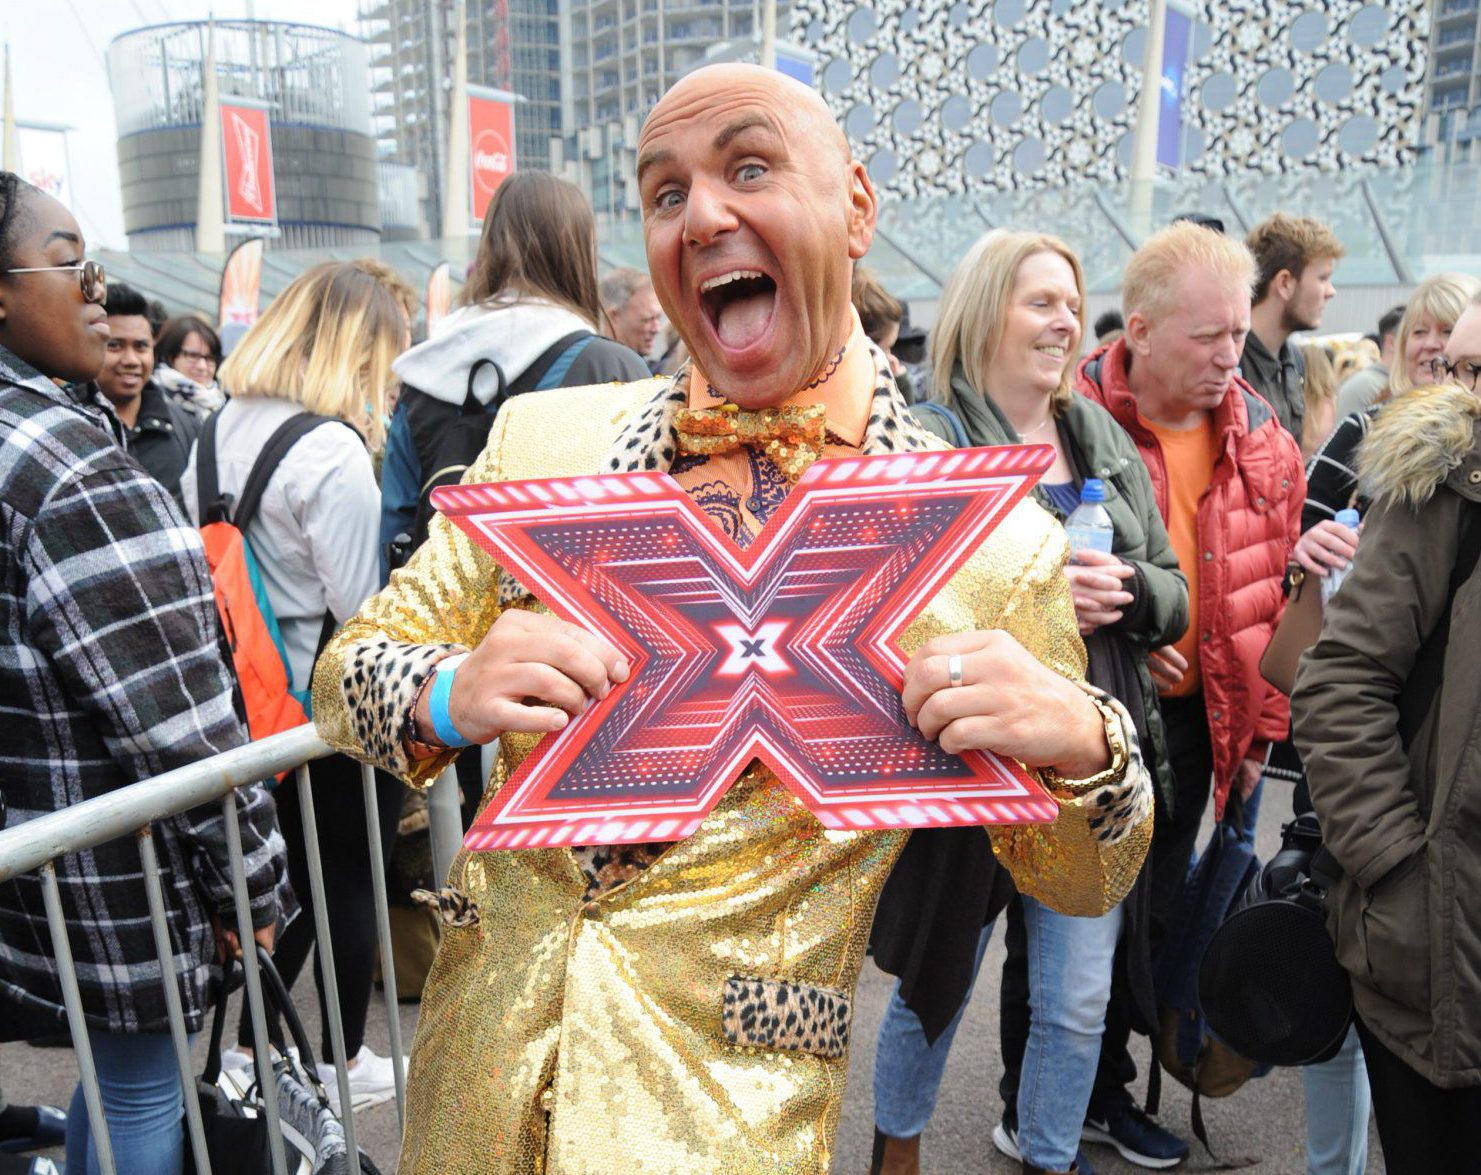 Simon Gross At X factor Auditions In London